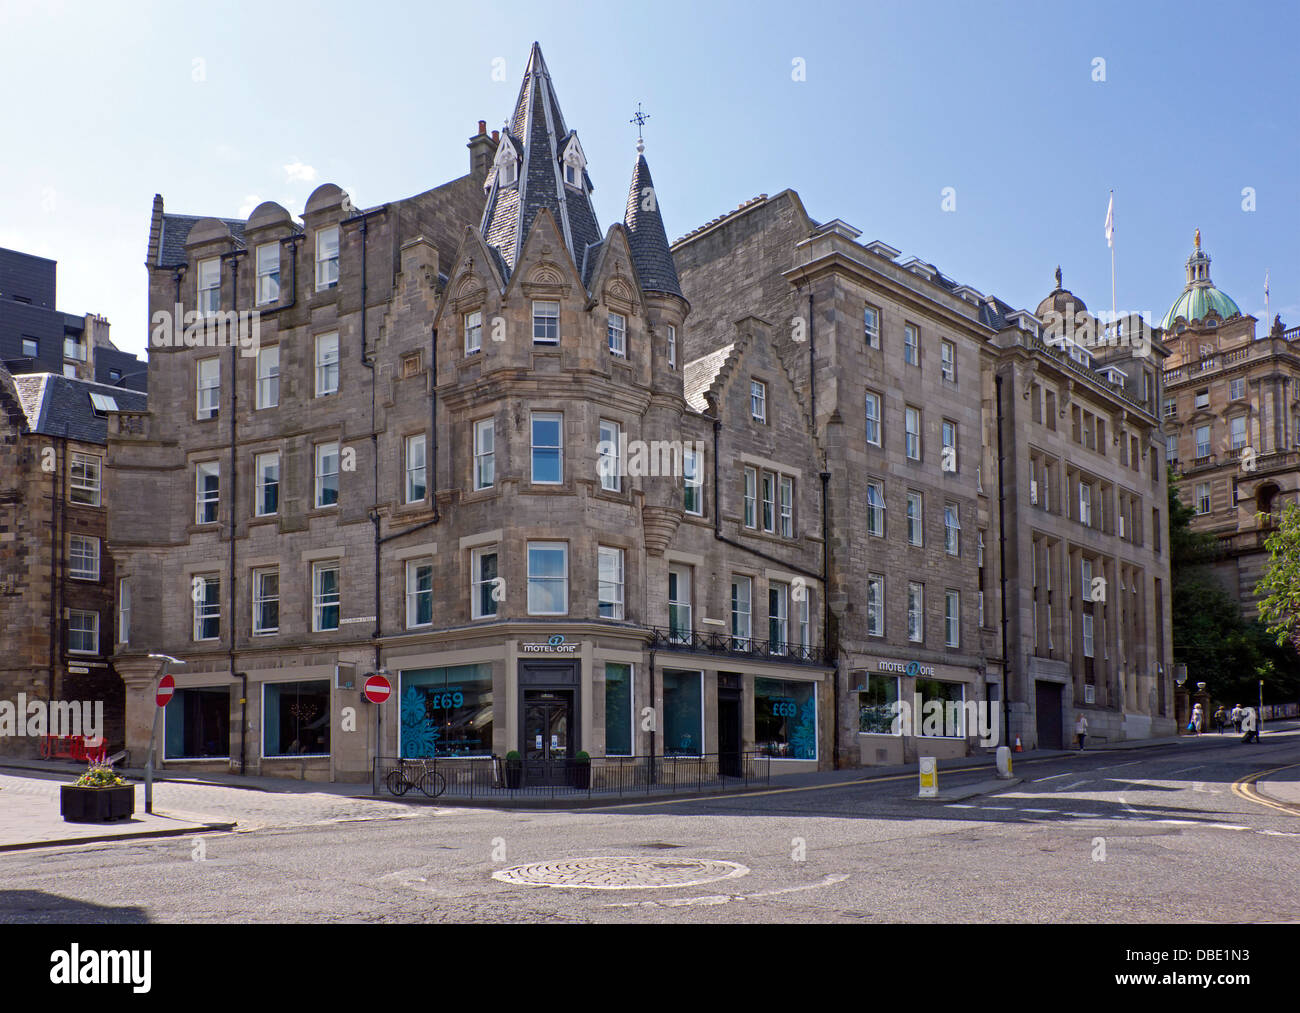 Hotel Edinburgh Motel One